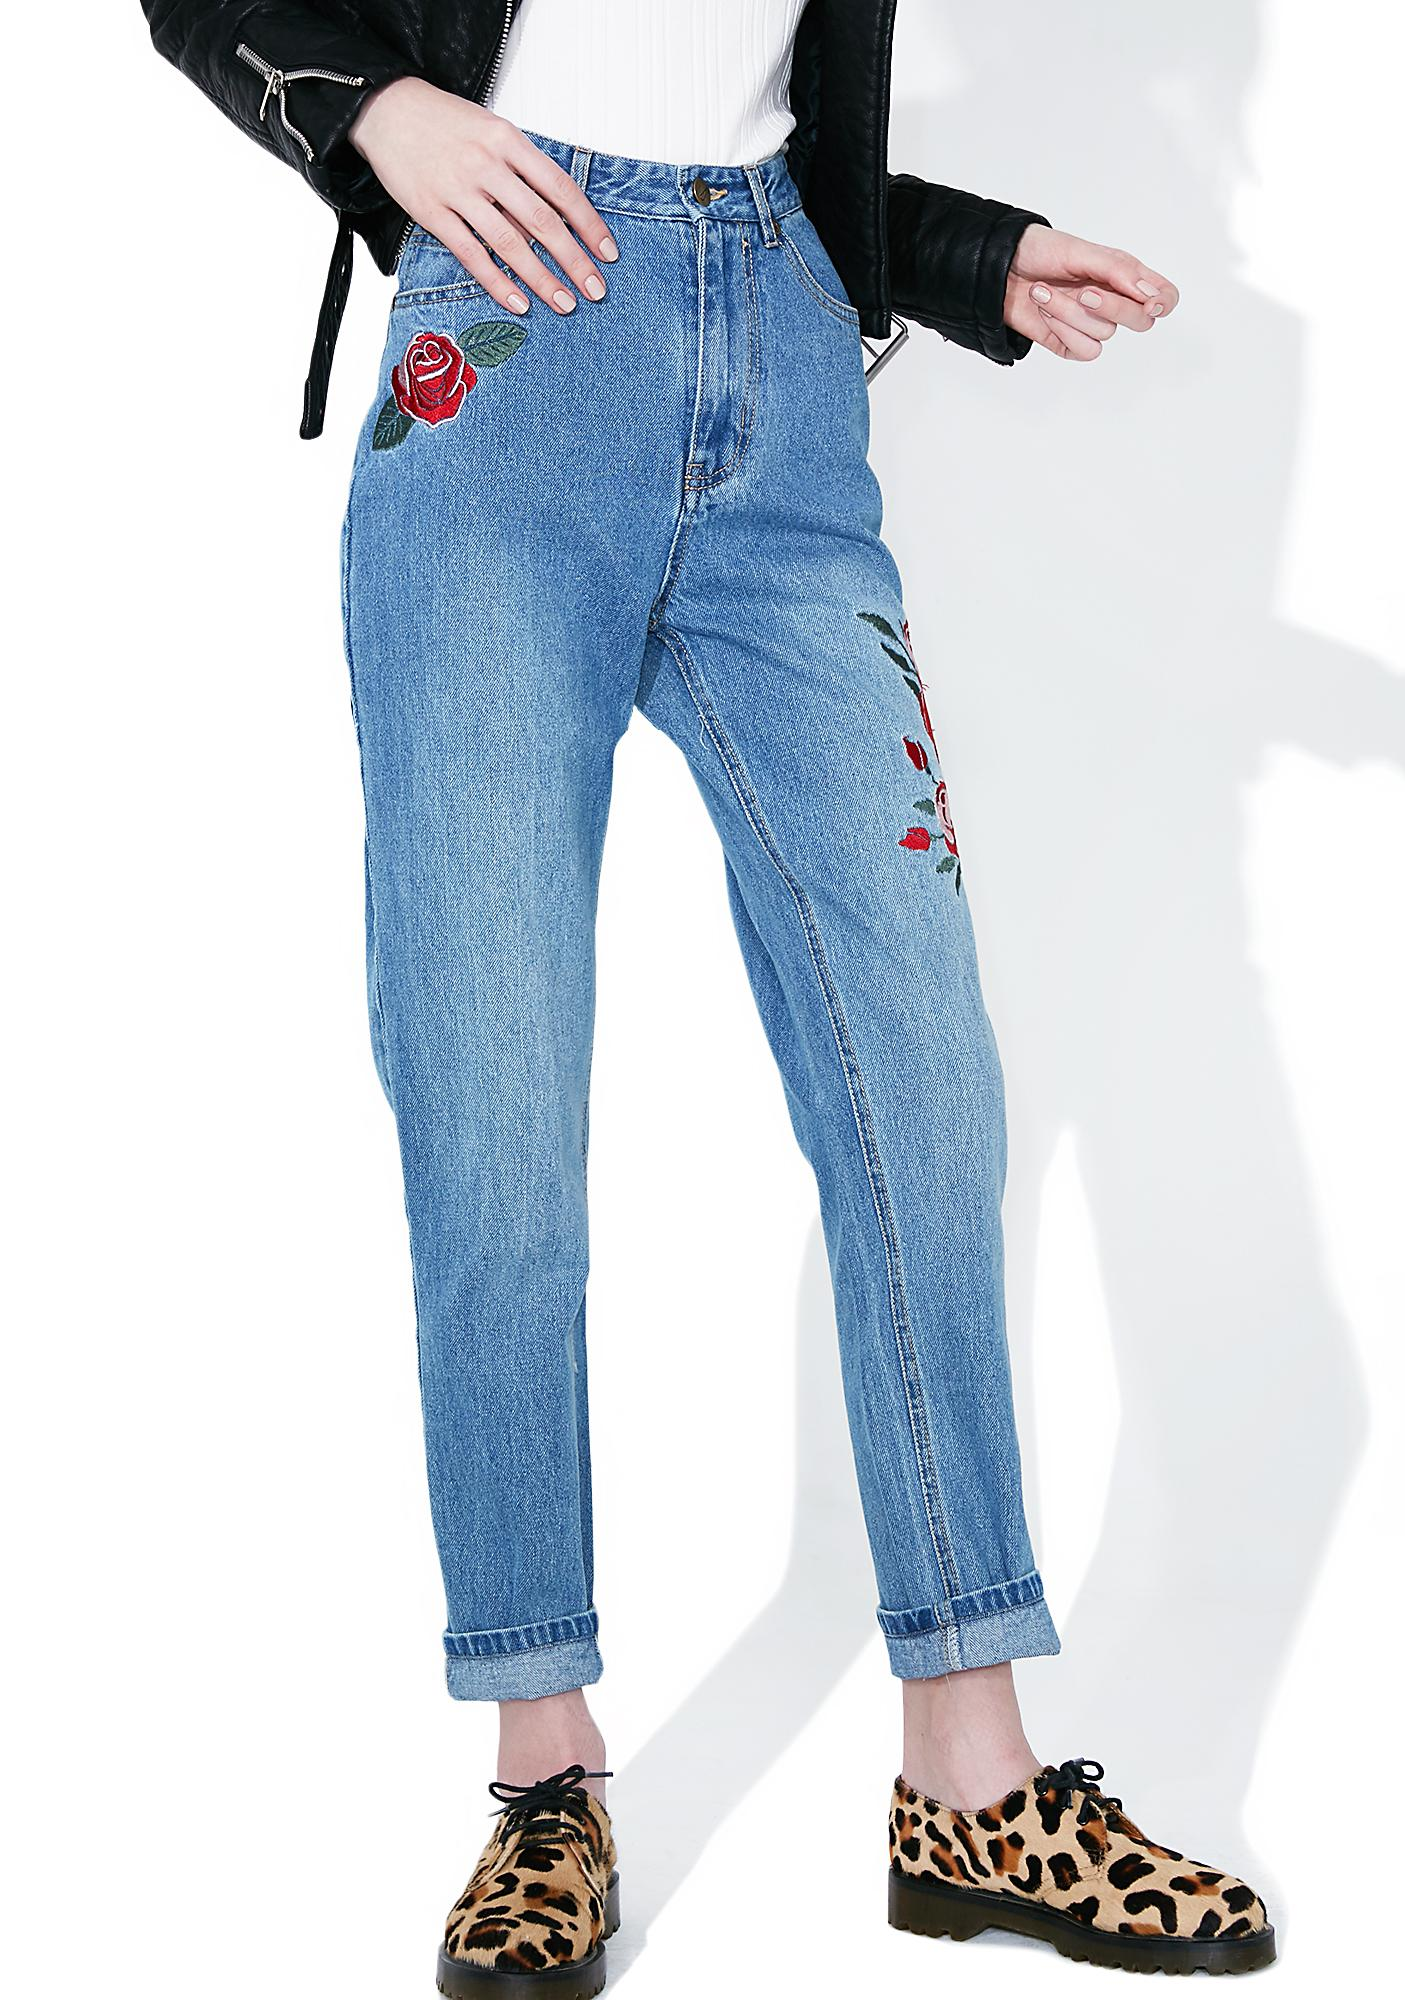 Mink Pink True Beauty Rose Scando Jeans